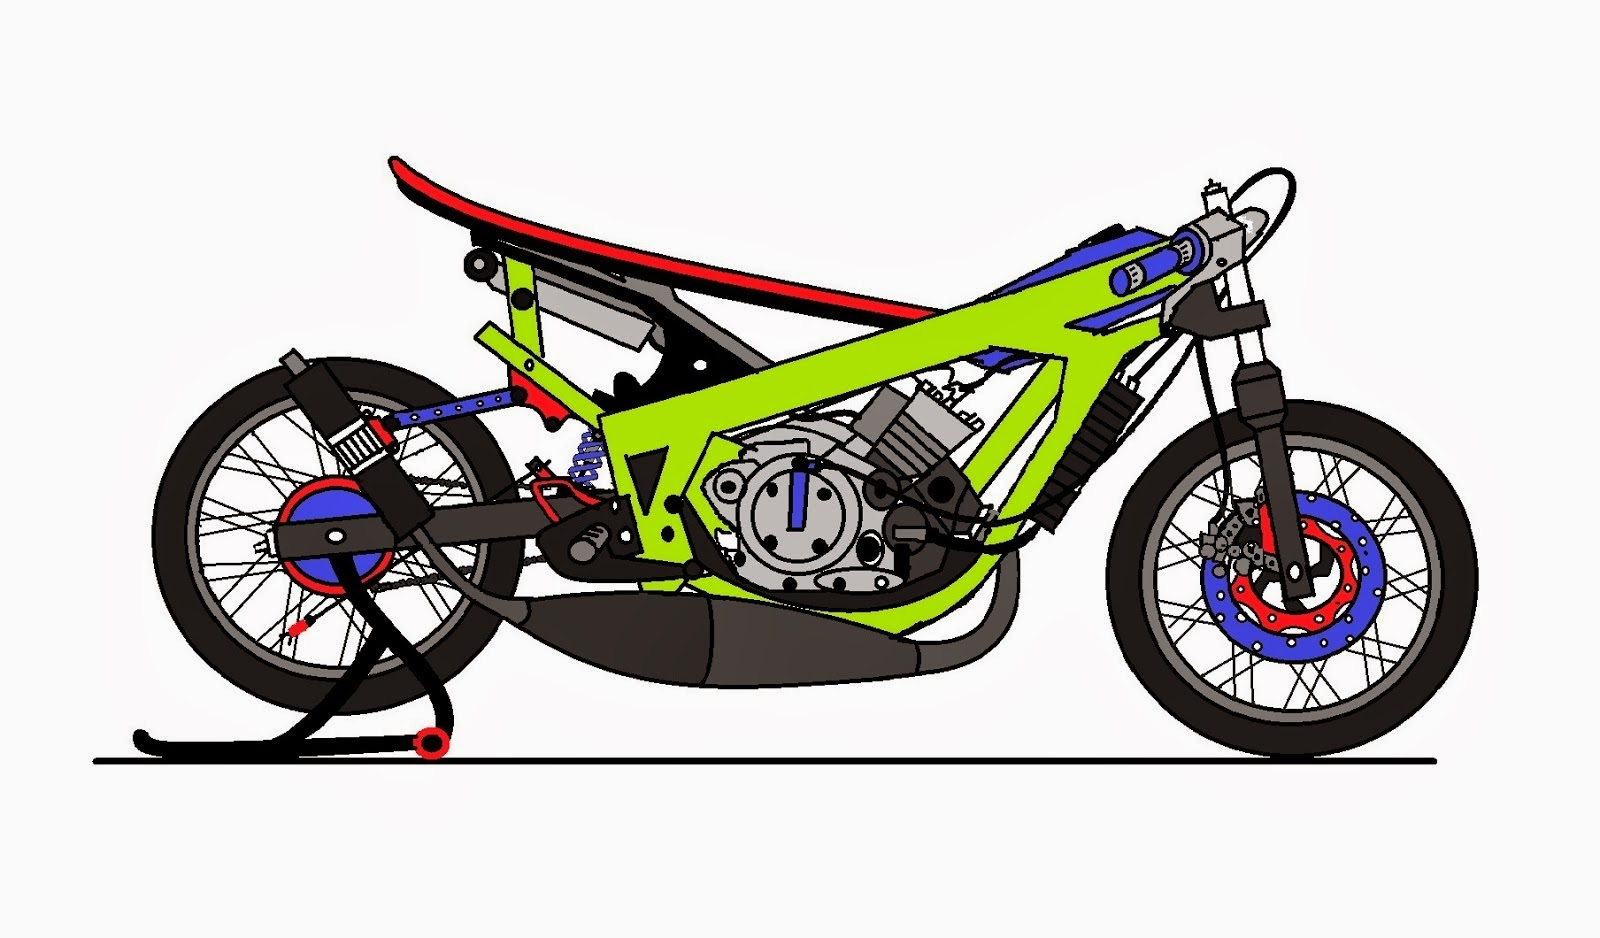 99 Gambar Motor Drag Cartoon Terkeren Ranting Modifikasi